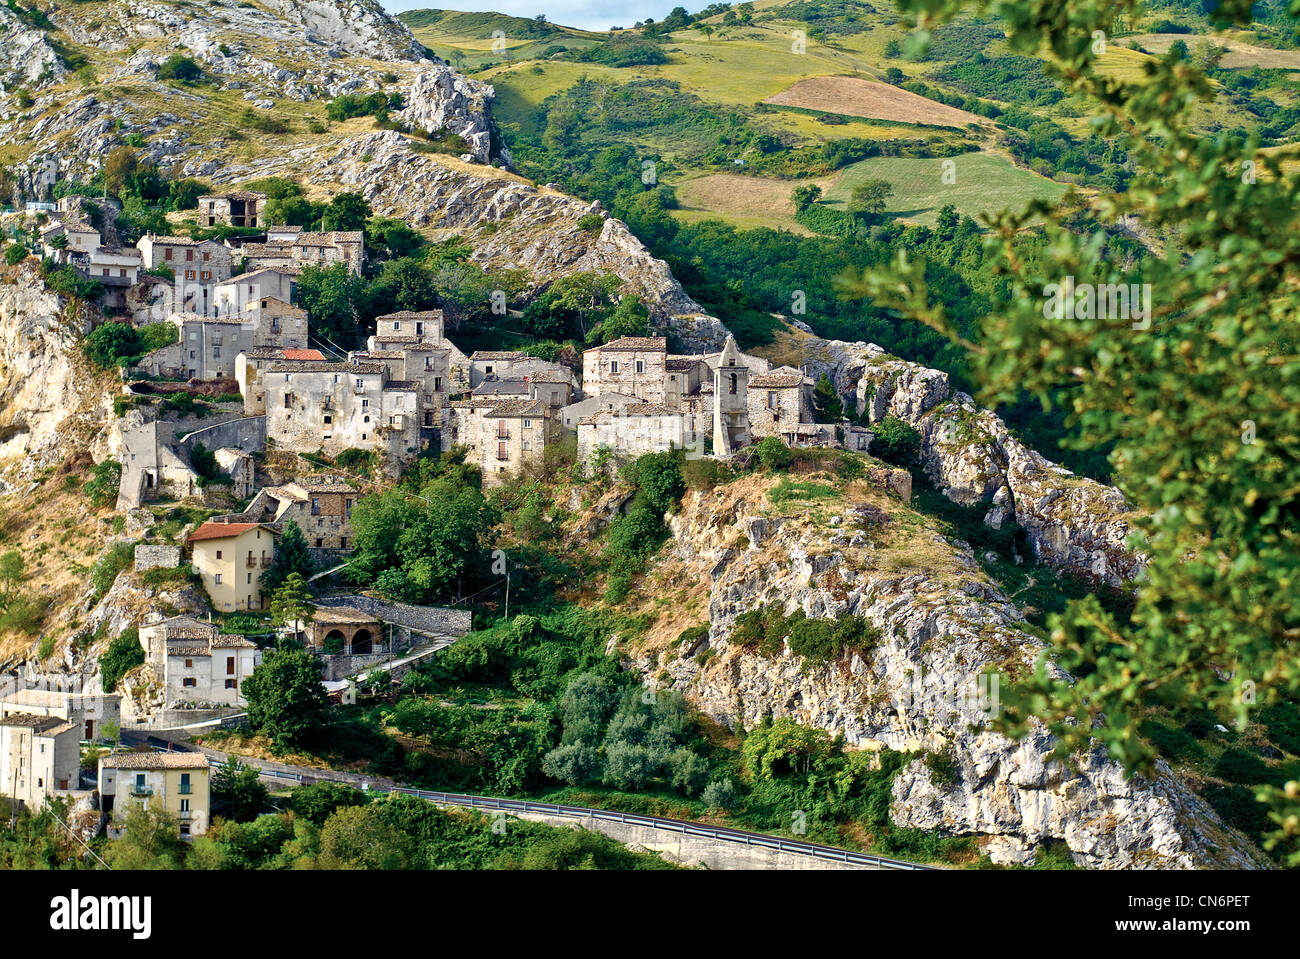 Europe Italy Abruzzo Gran Sasso Monti della laga national Park Province of Pescara Corvara View Stock Photo